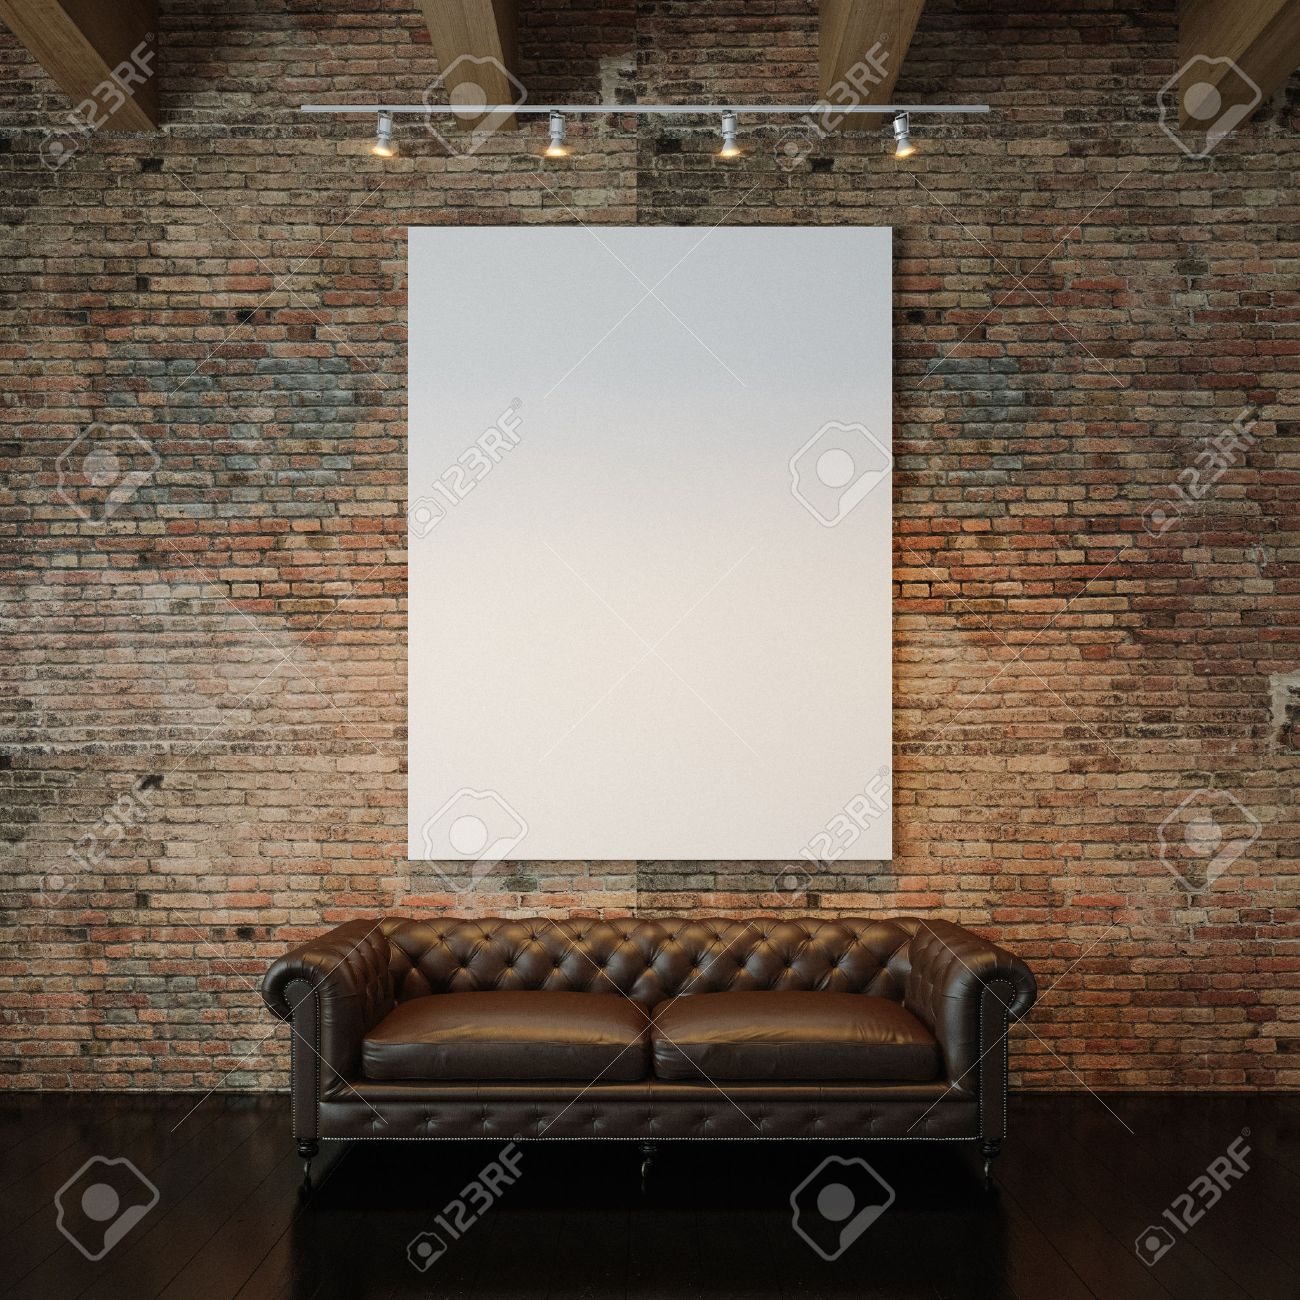 Plain wood table with hipster brick wall background stock photo - Blank White Canvas And Vintage Classic Sofa Against The Natural Brick Wall Background Vertical